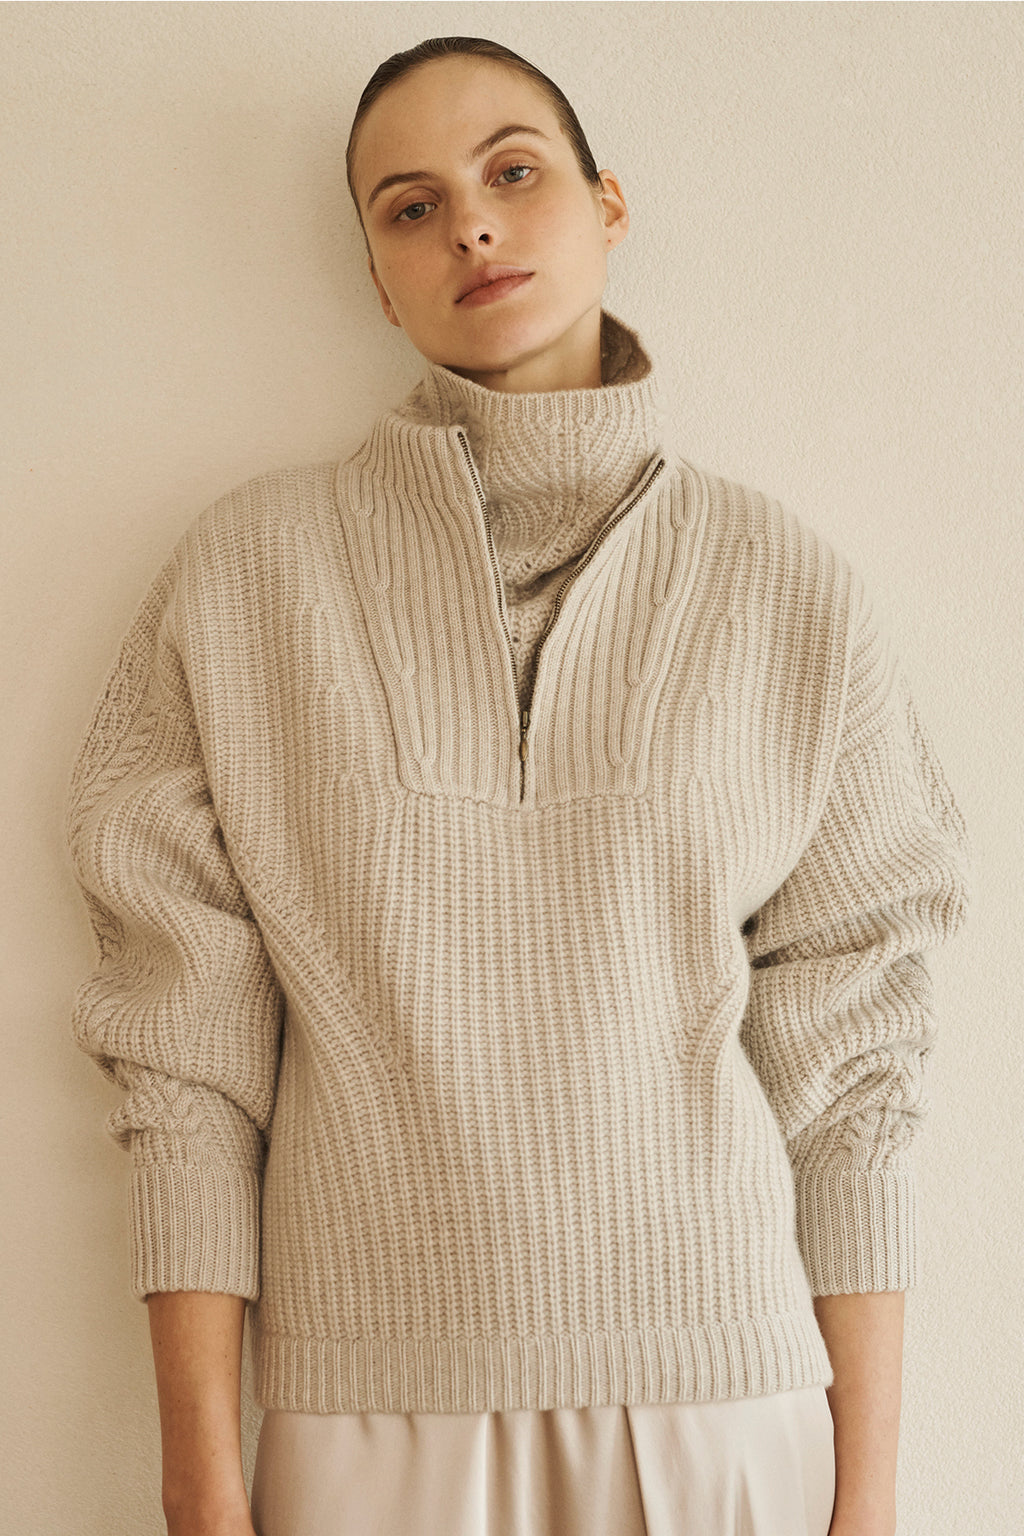 GLASCOW cashmere sweater